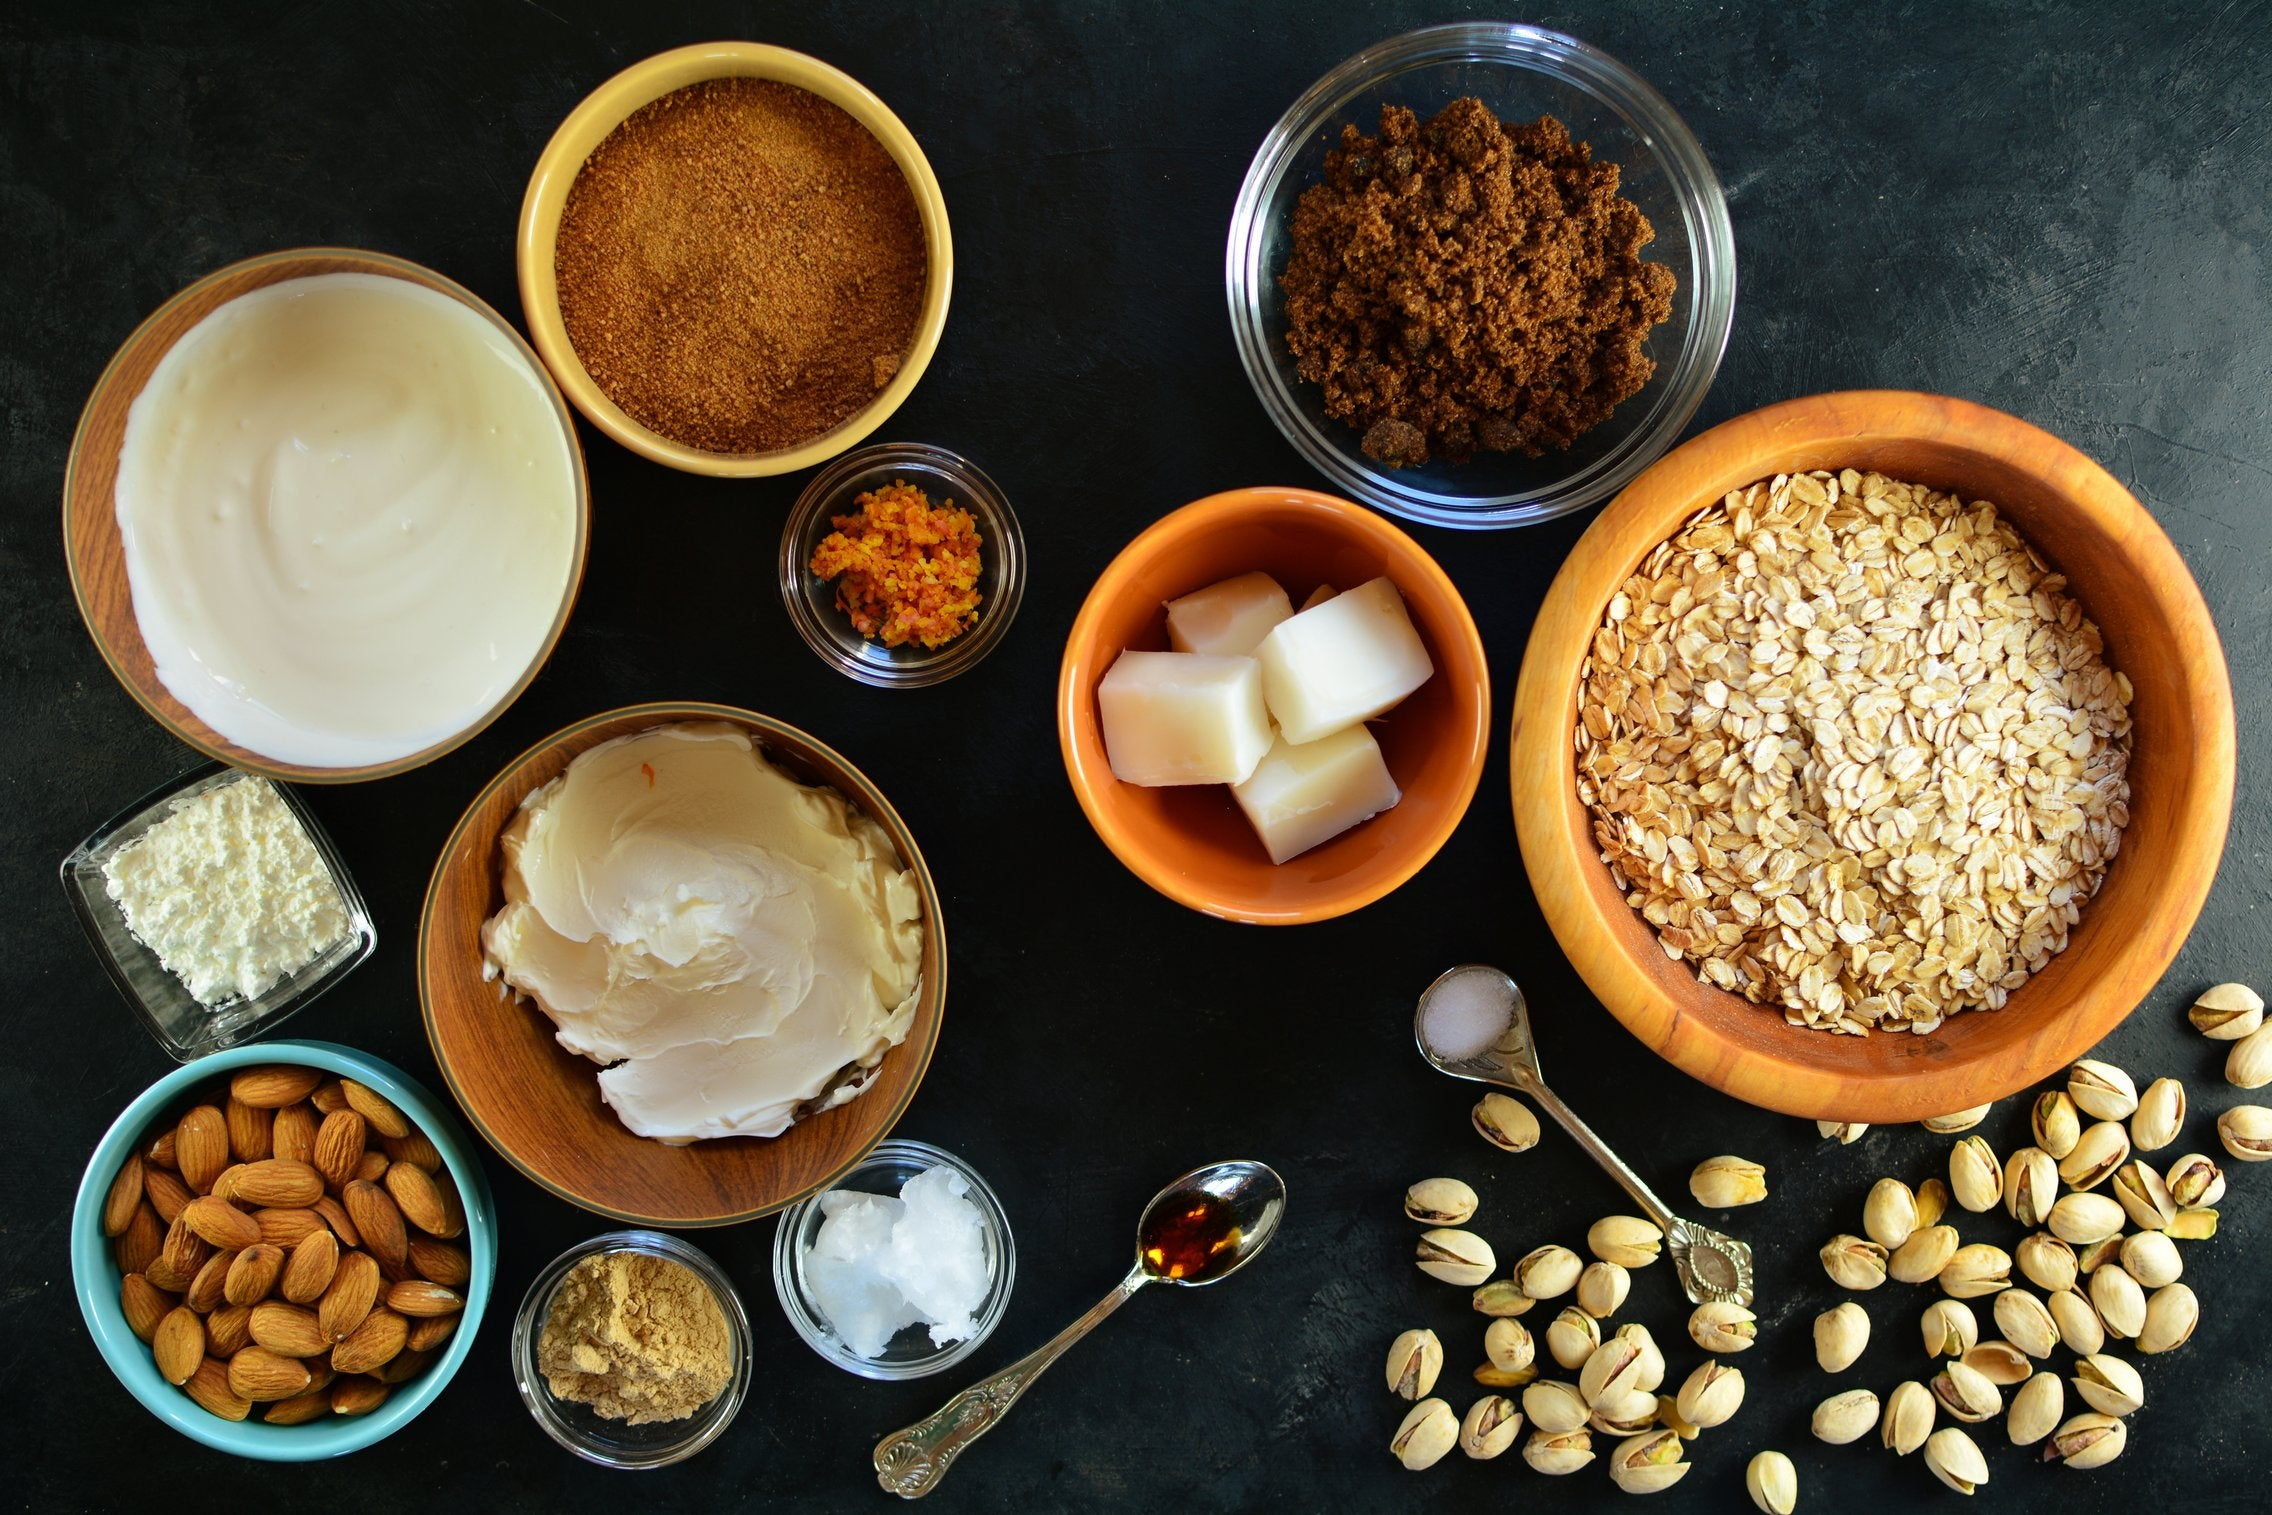 Maca Pistachio Cheesecake - Ingredients